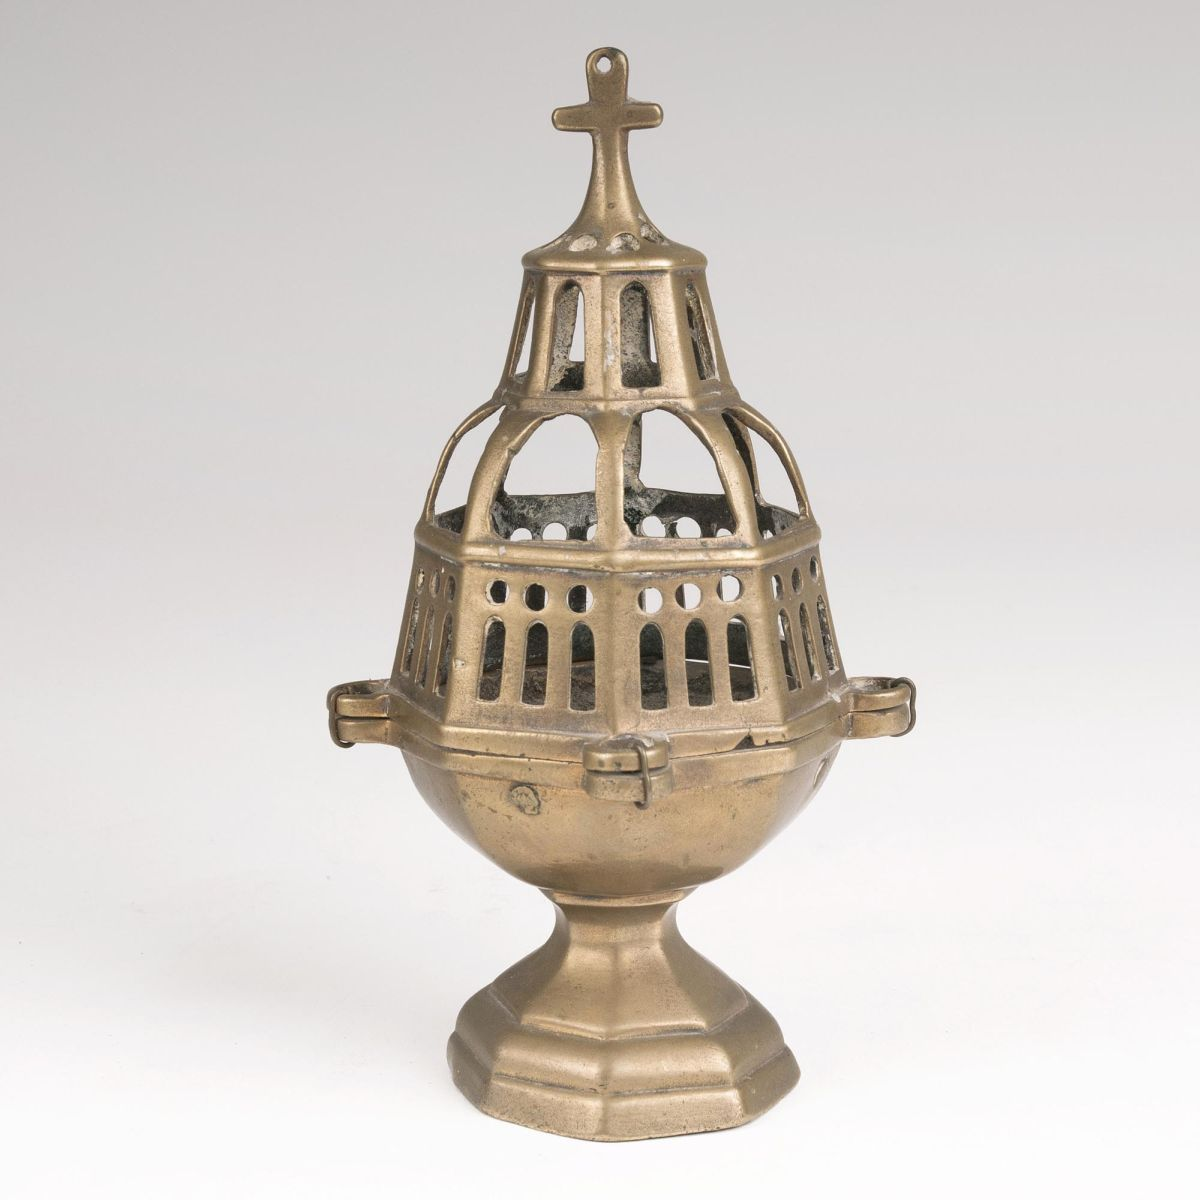 An early Baroque Brass Incense Burner